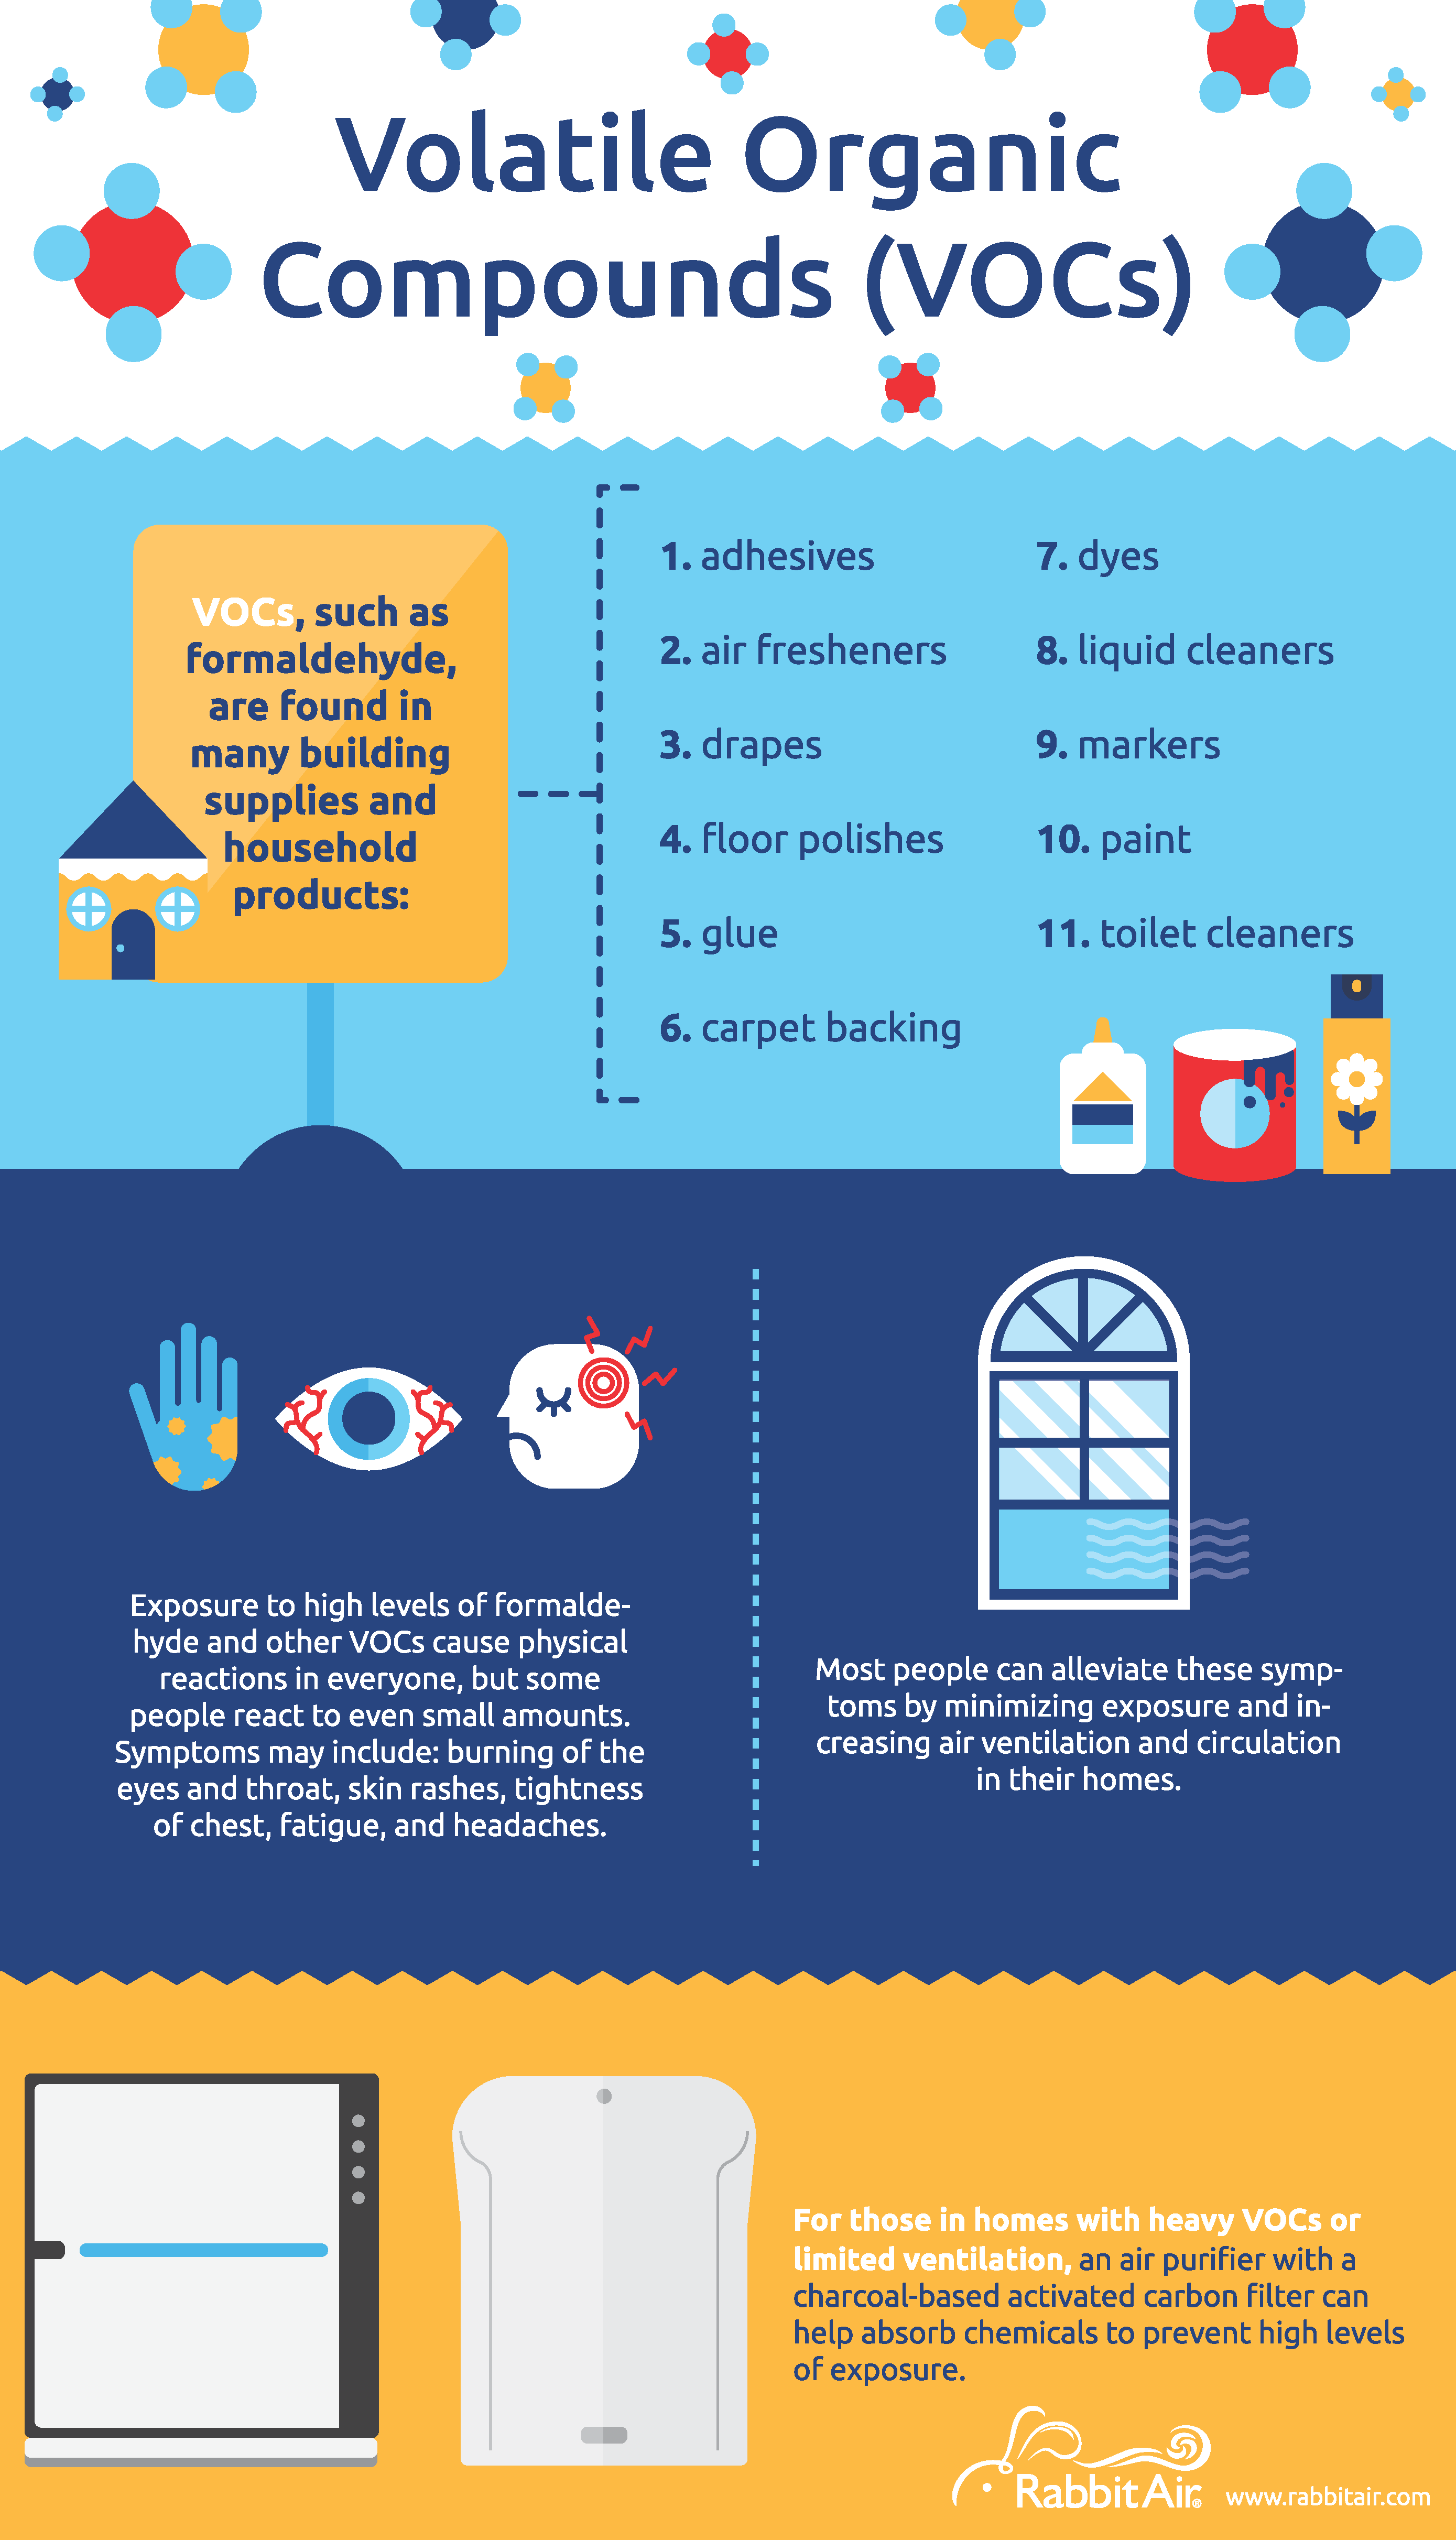 All About VOCs (Volatile Organic Compounds) - Infographic